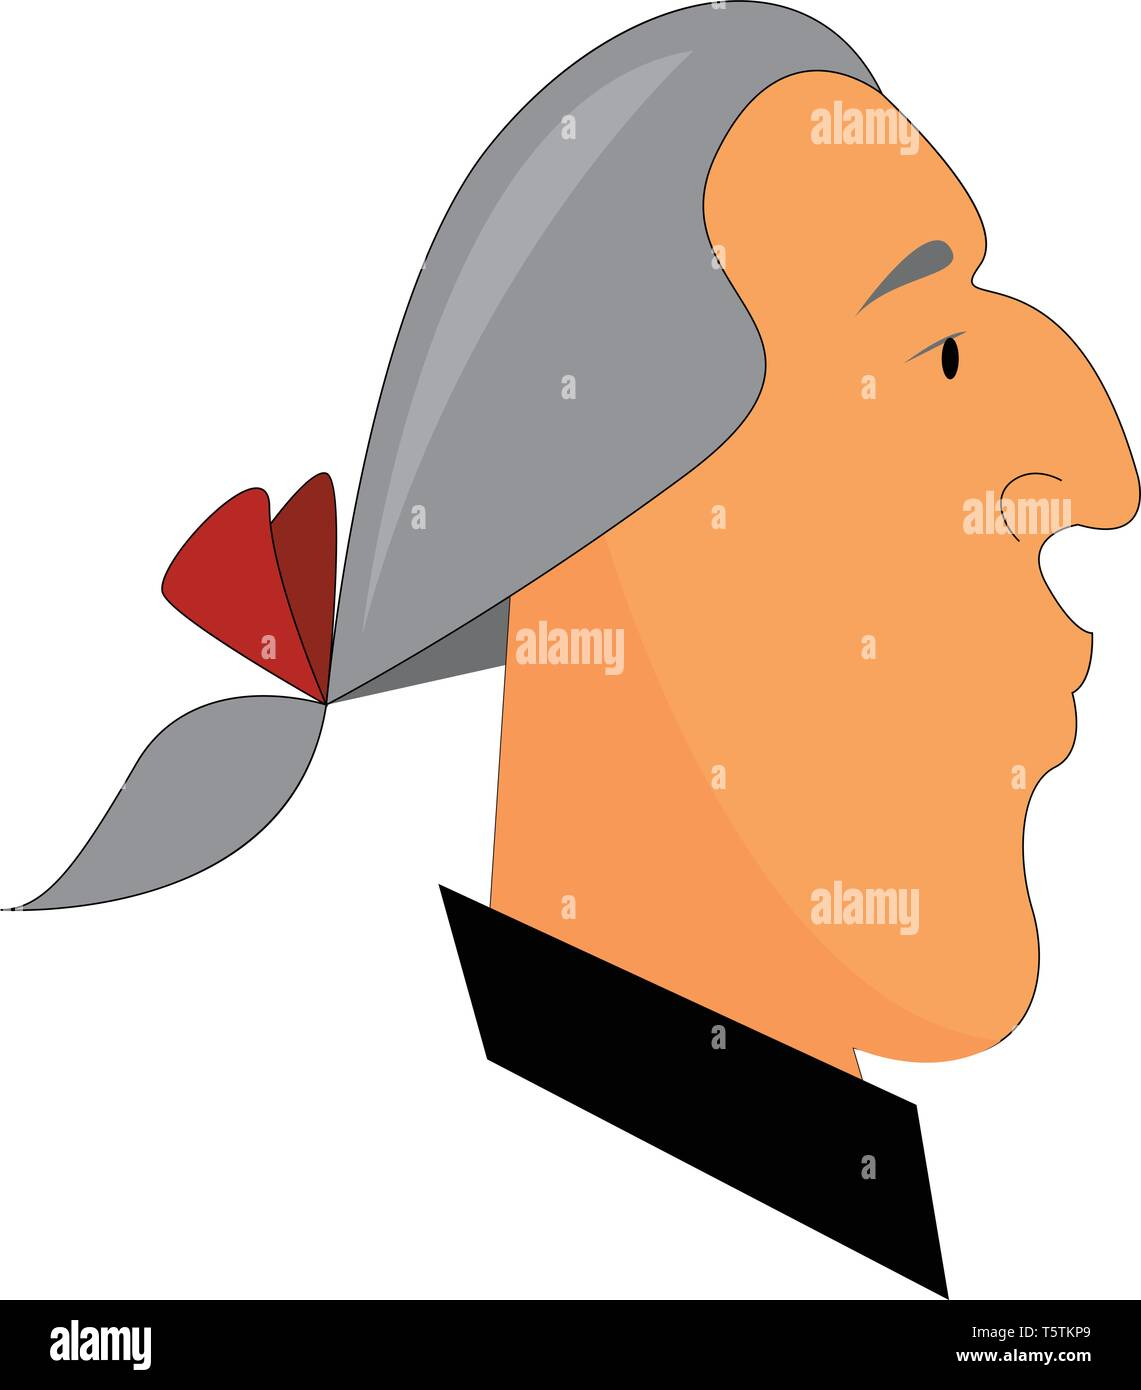 A man in a grey-colored wig has tied up his hair with a red-colored ribbon He is dressed in a black-colored shirt and has a large curved nose vector c - Stock Vector